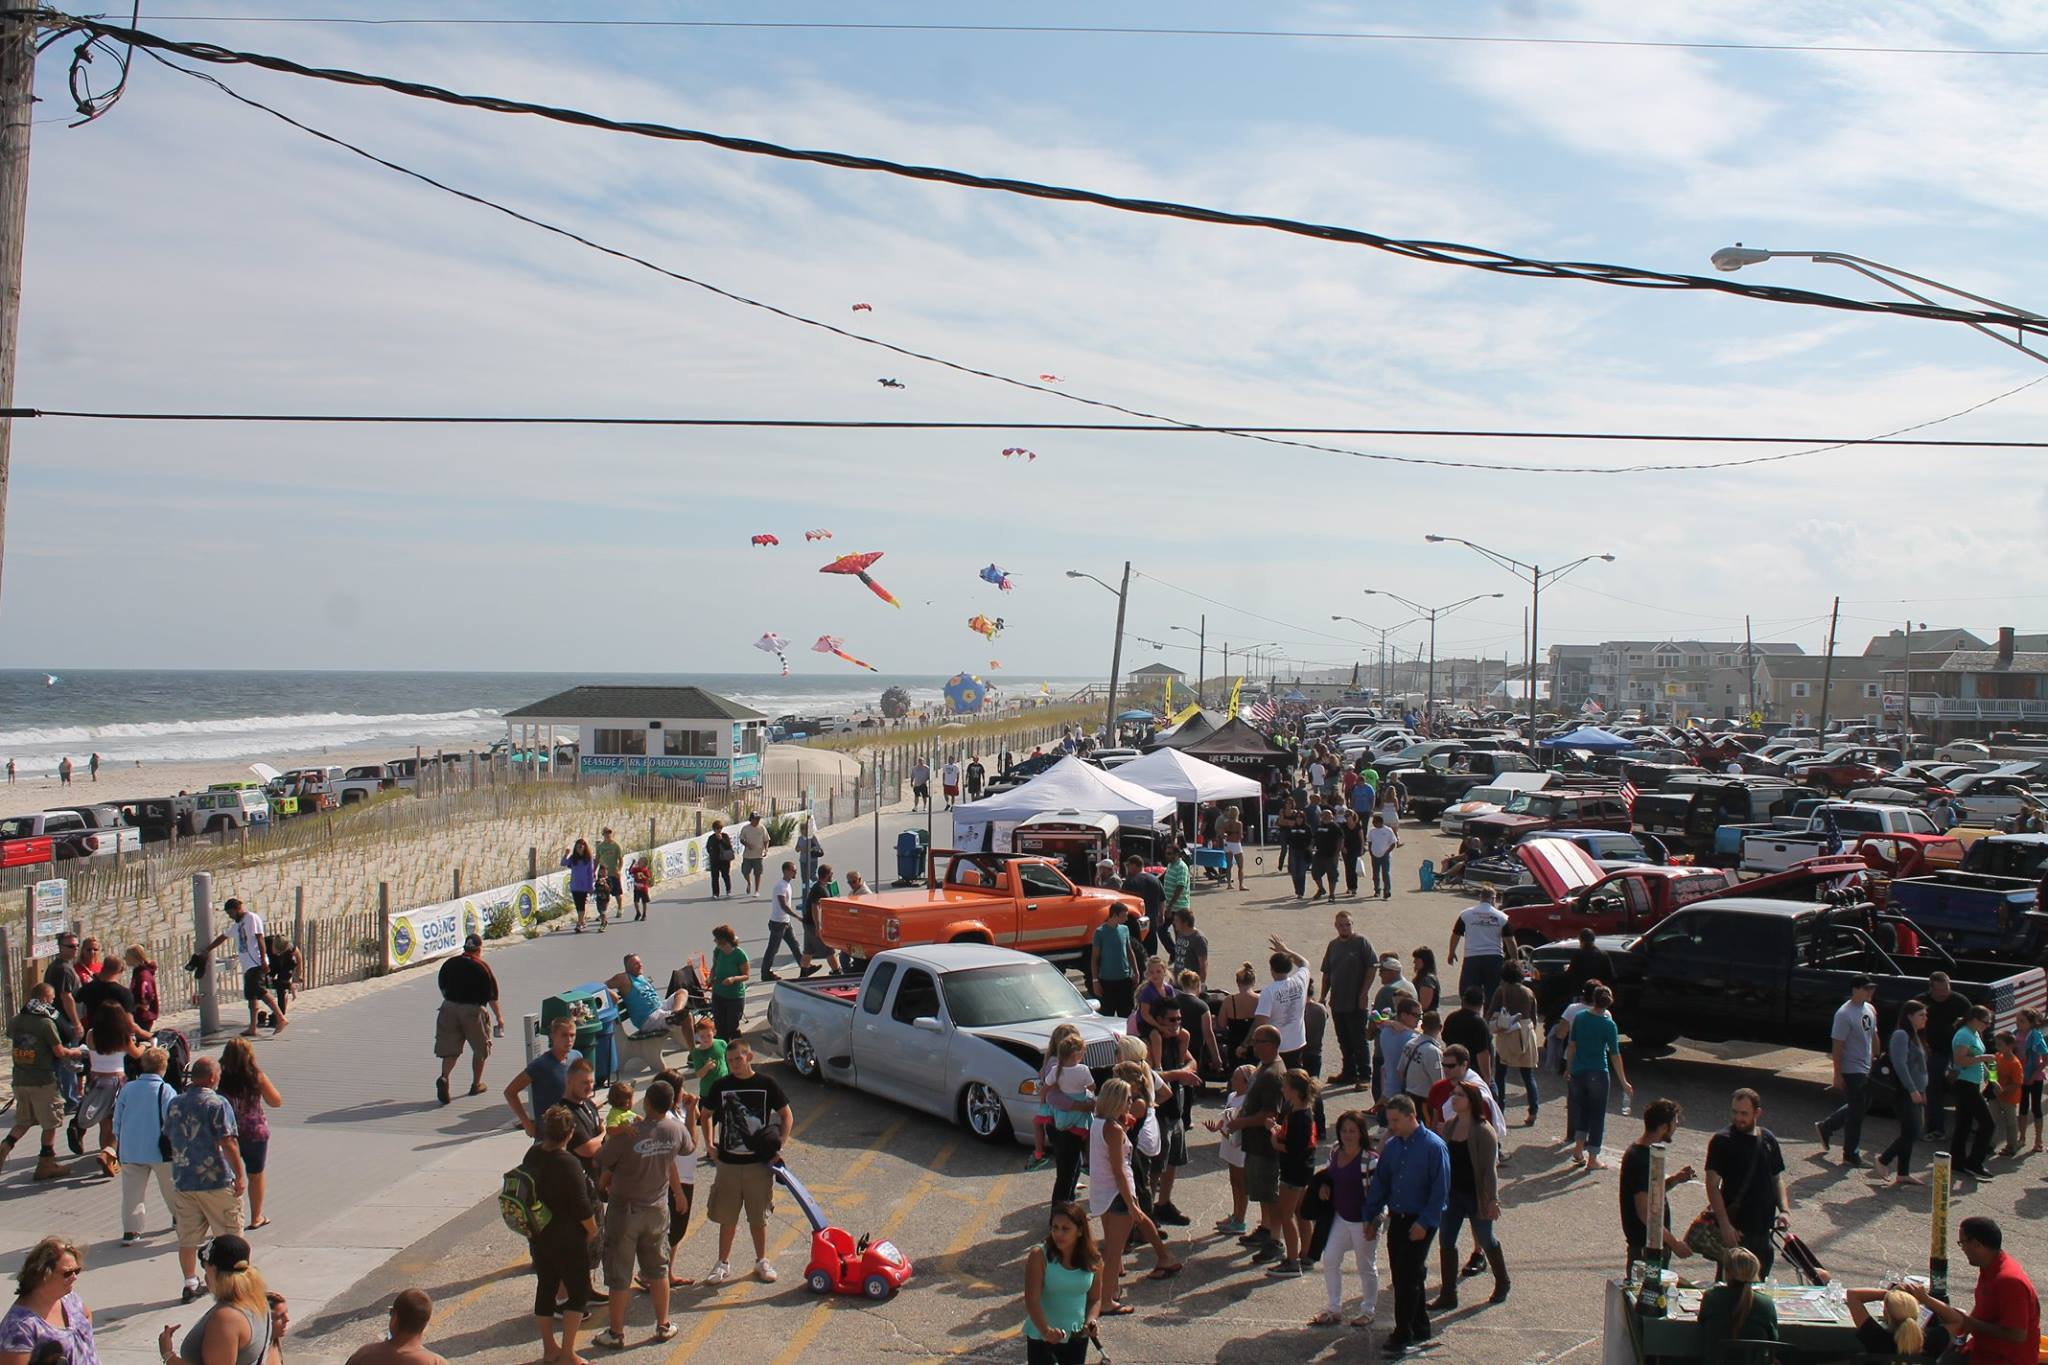 The 2015 truck and offroad show, which took place in Seaside Park. (File Photo)